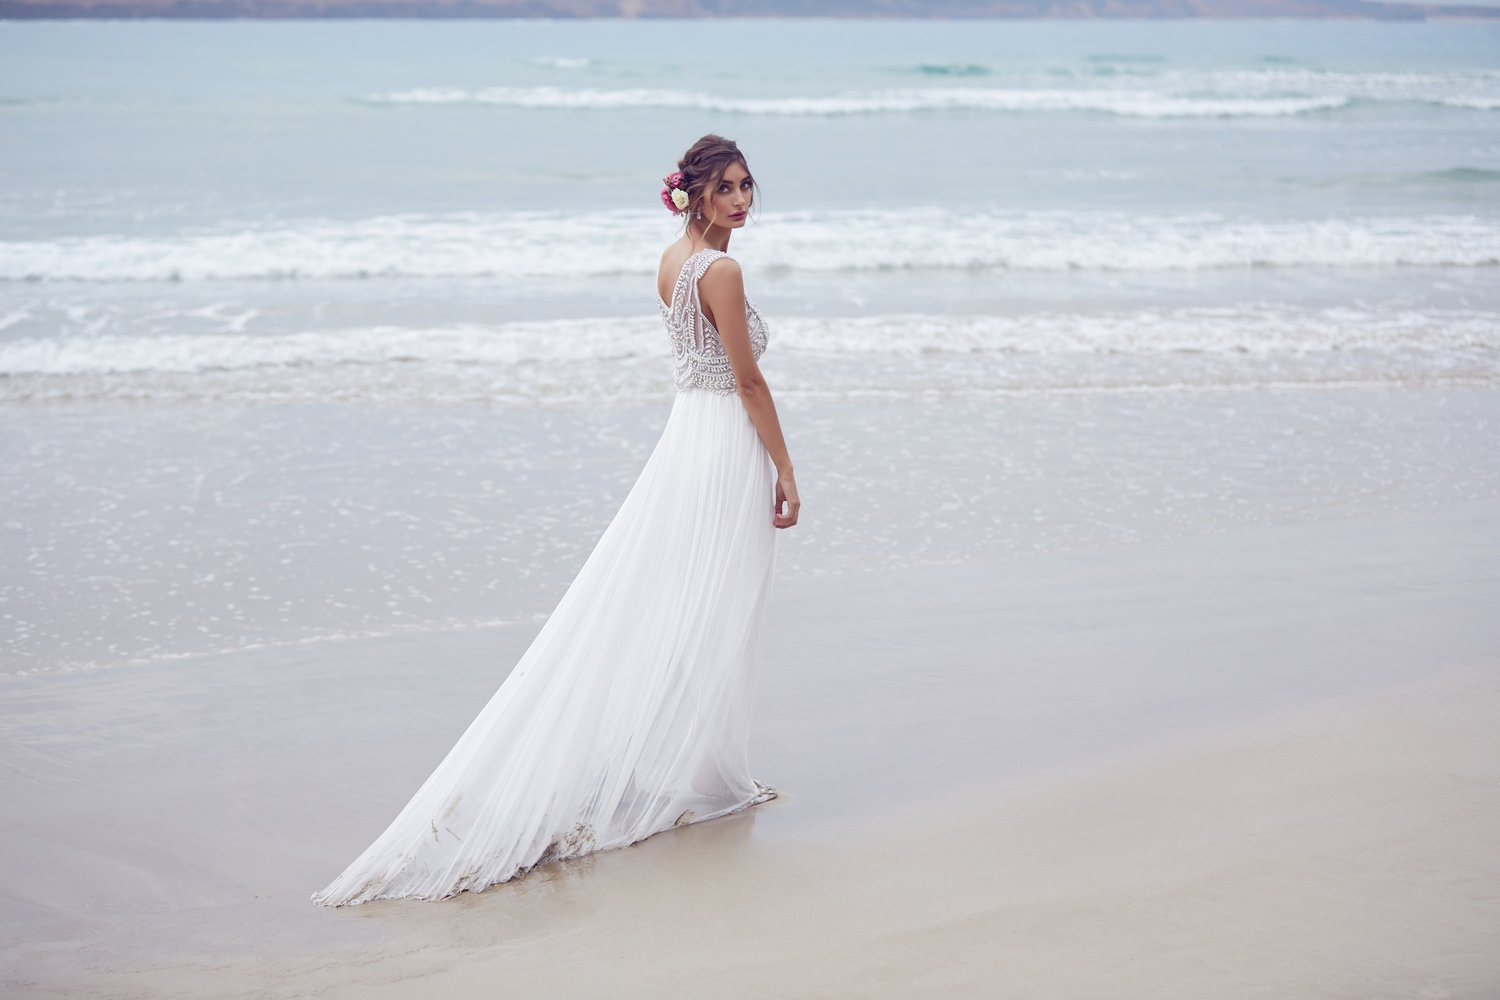 Madison+Silk+Tulle+3+low+res.jpg